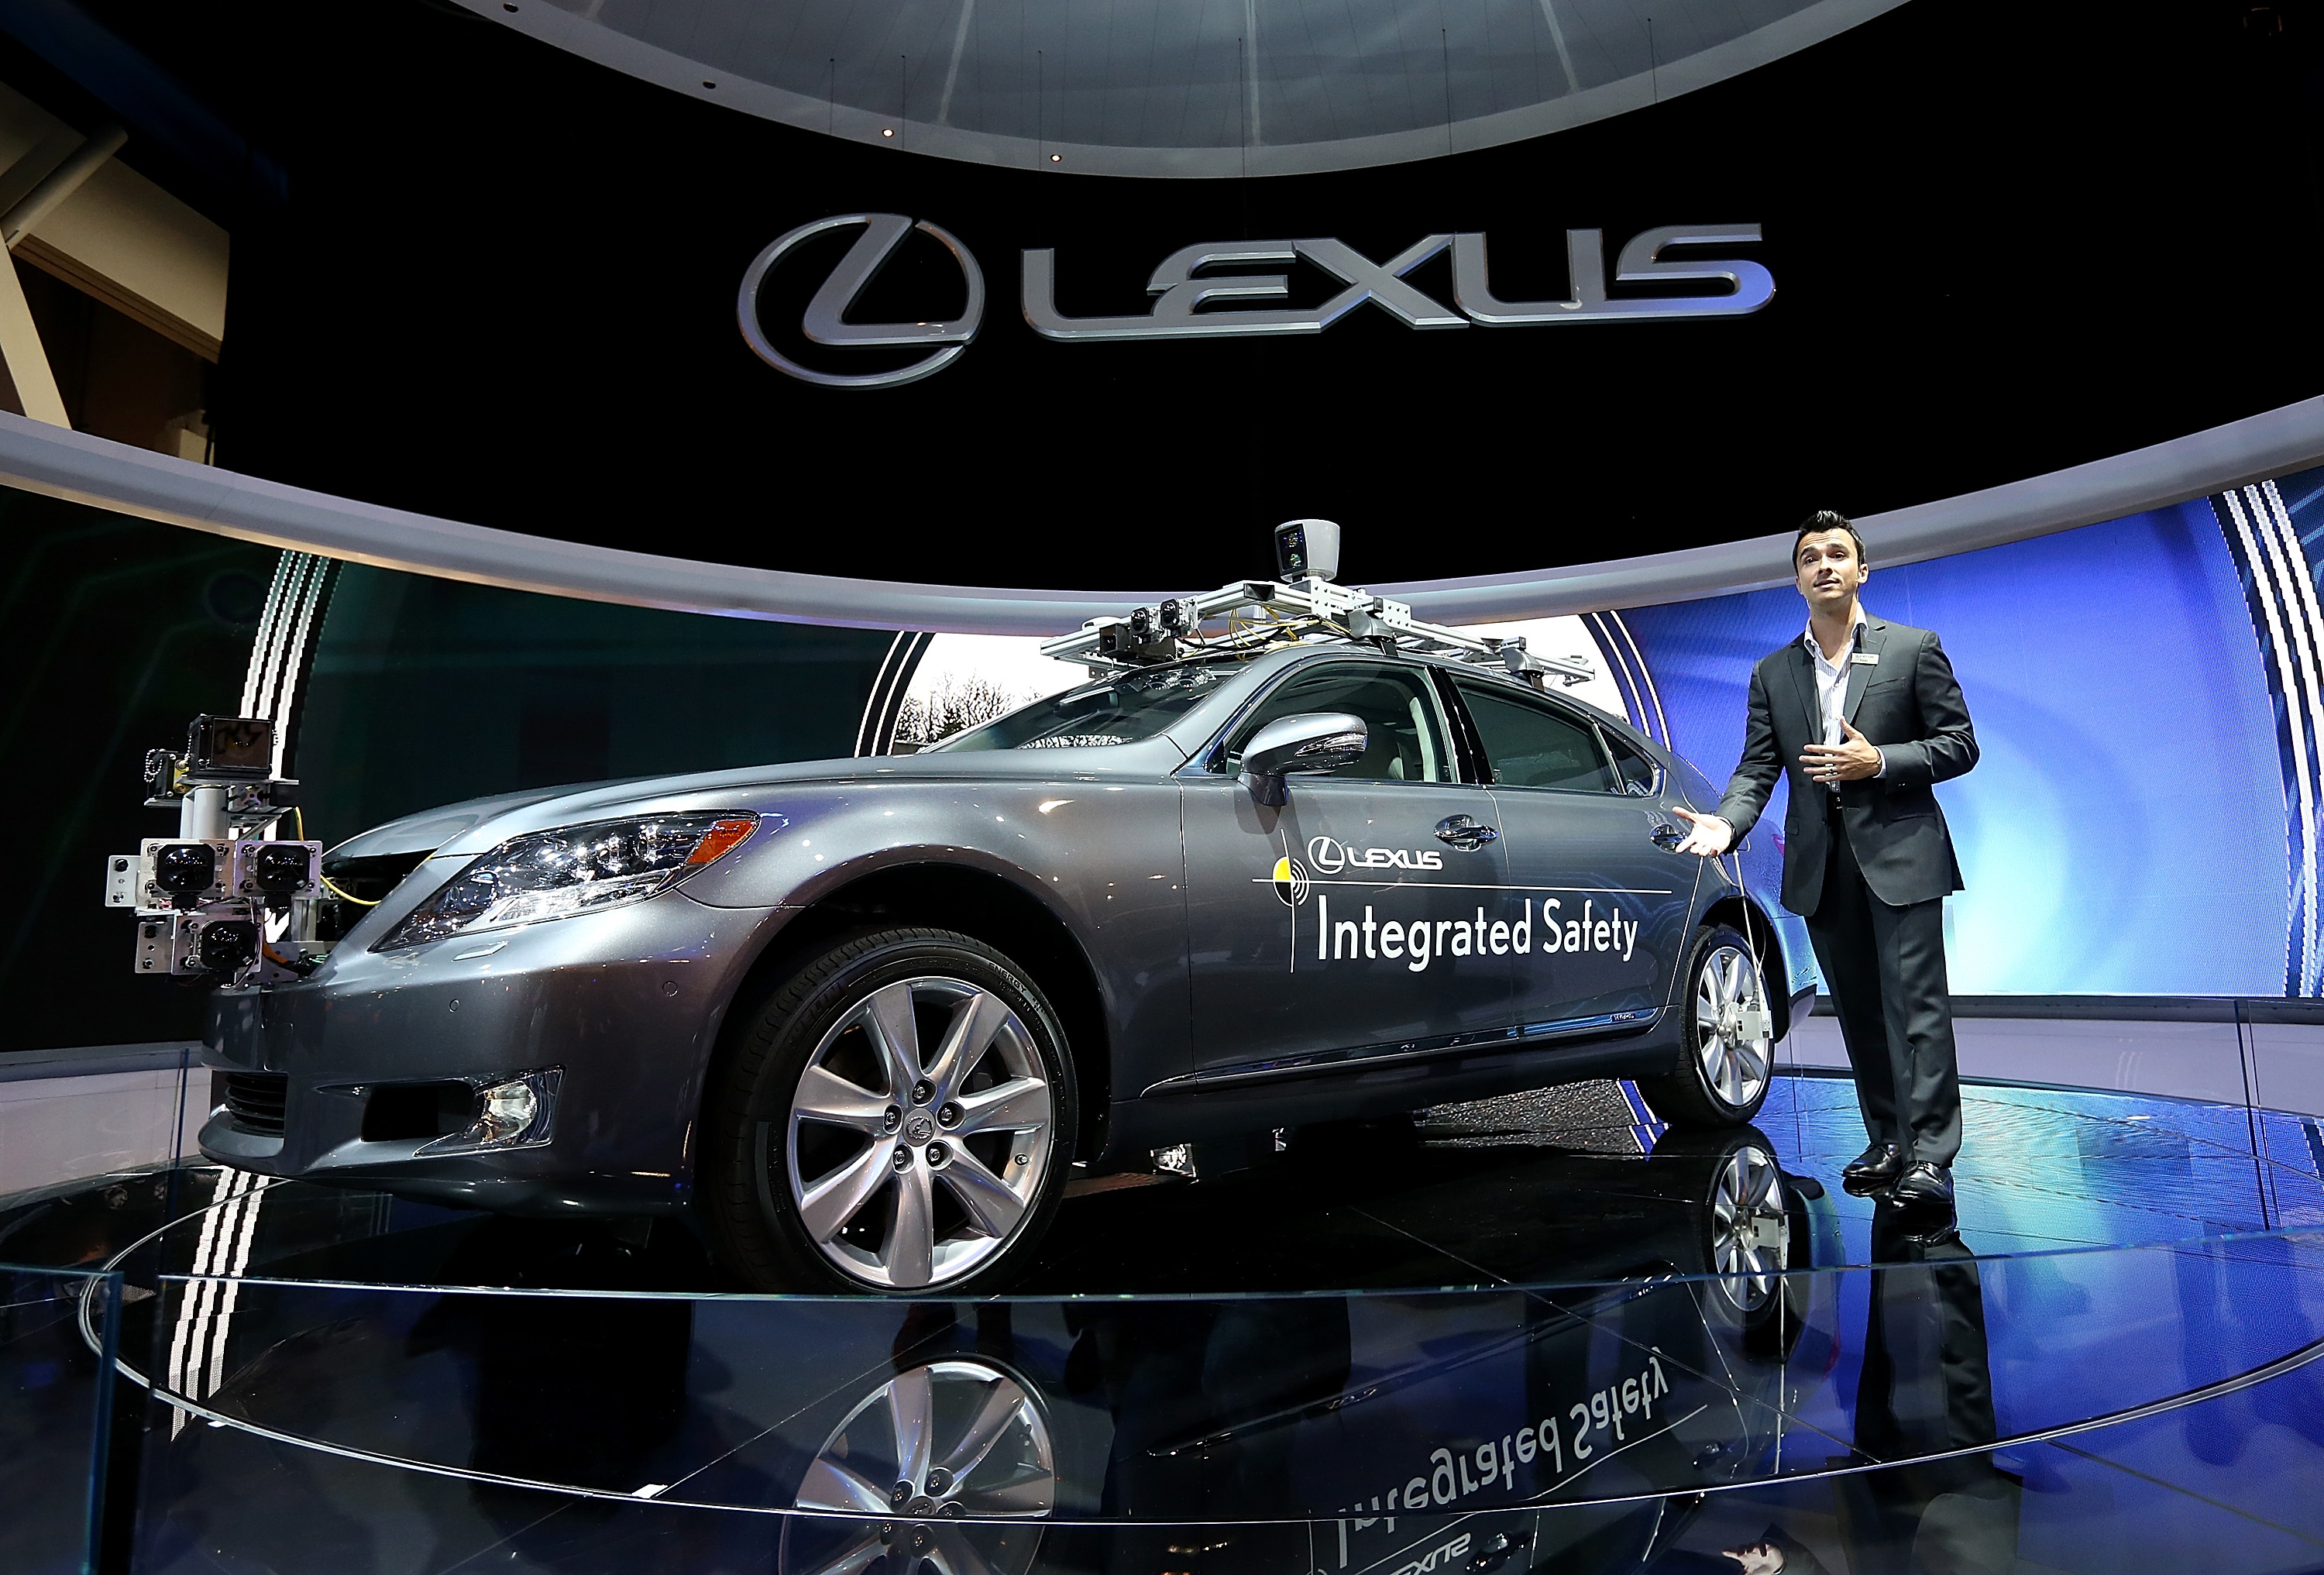 Lexus LS Integrated Safety self-driving car